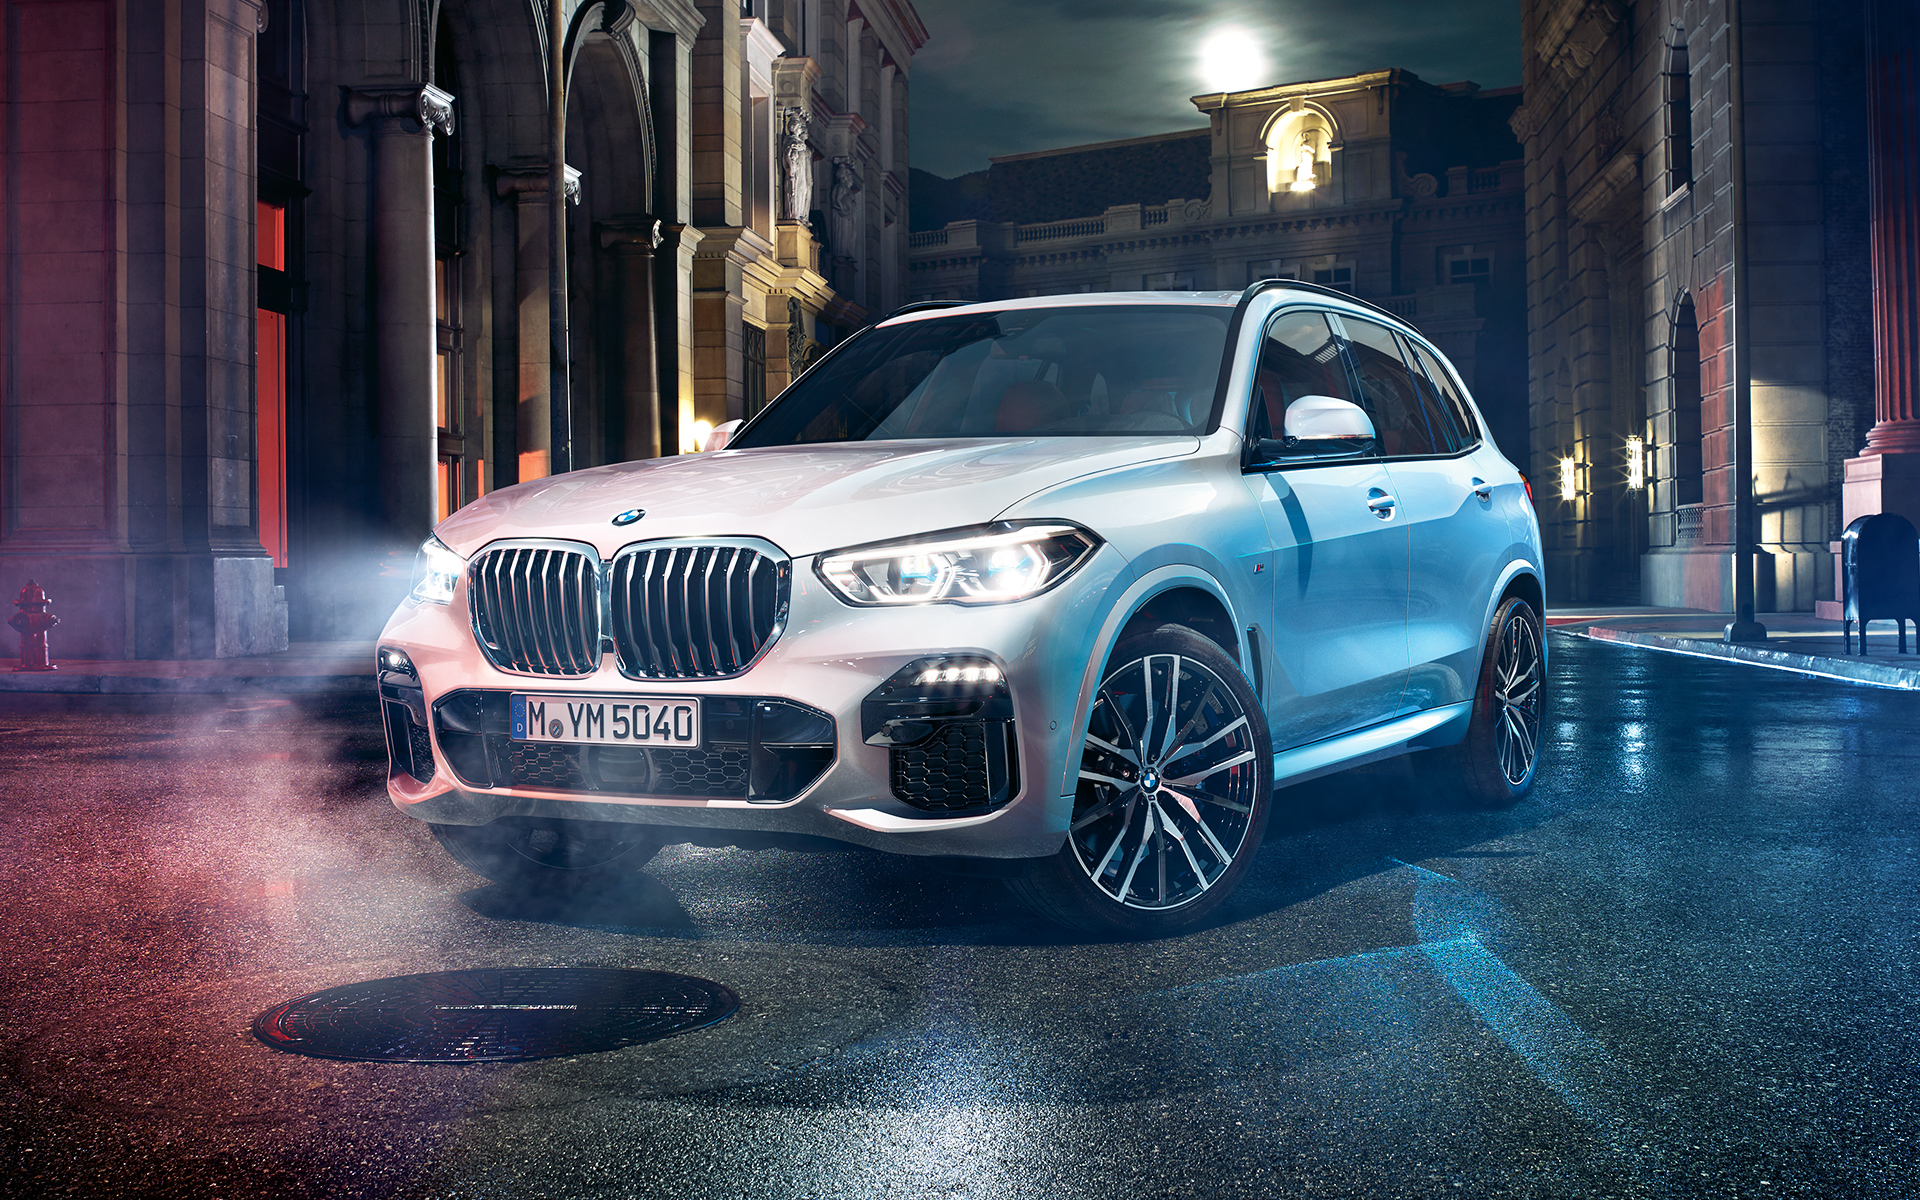 Front shot of the BMW X5 at night in an urban setting